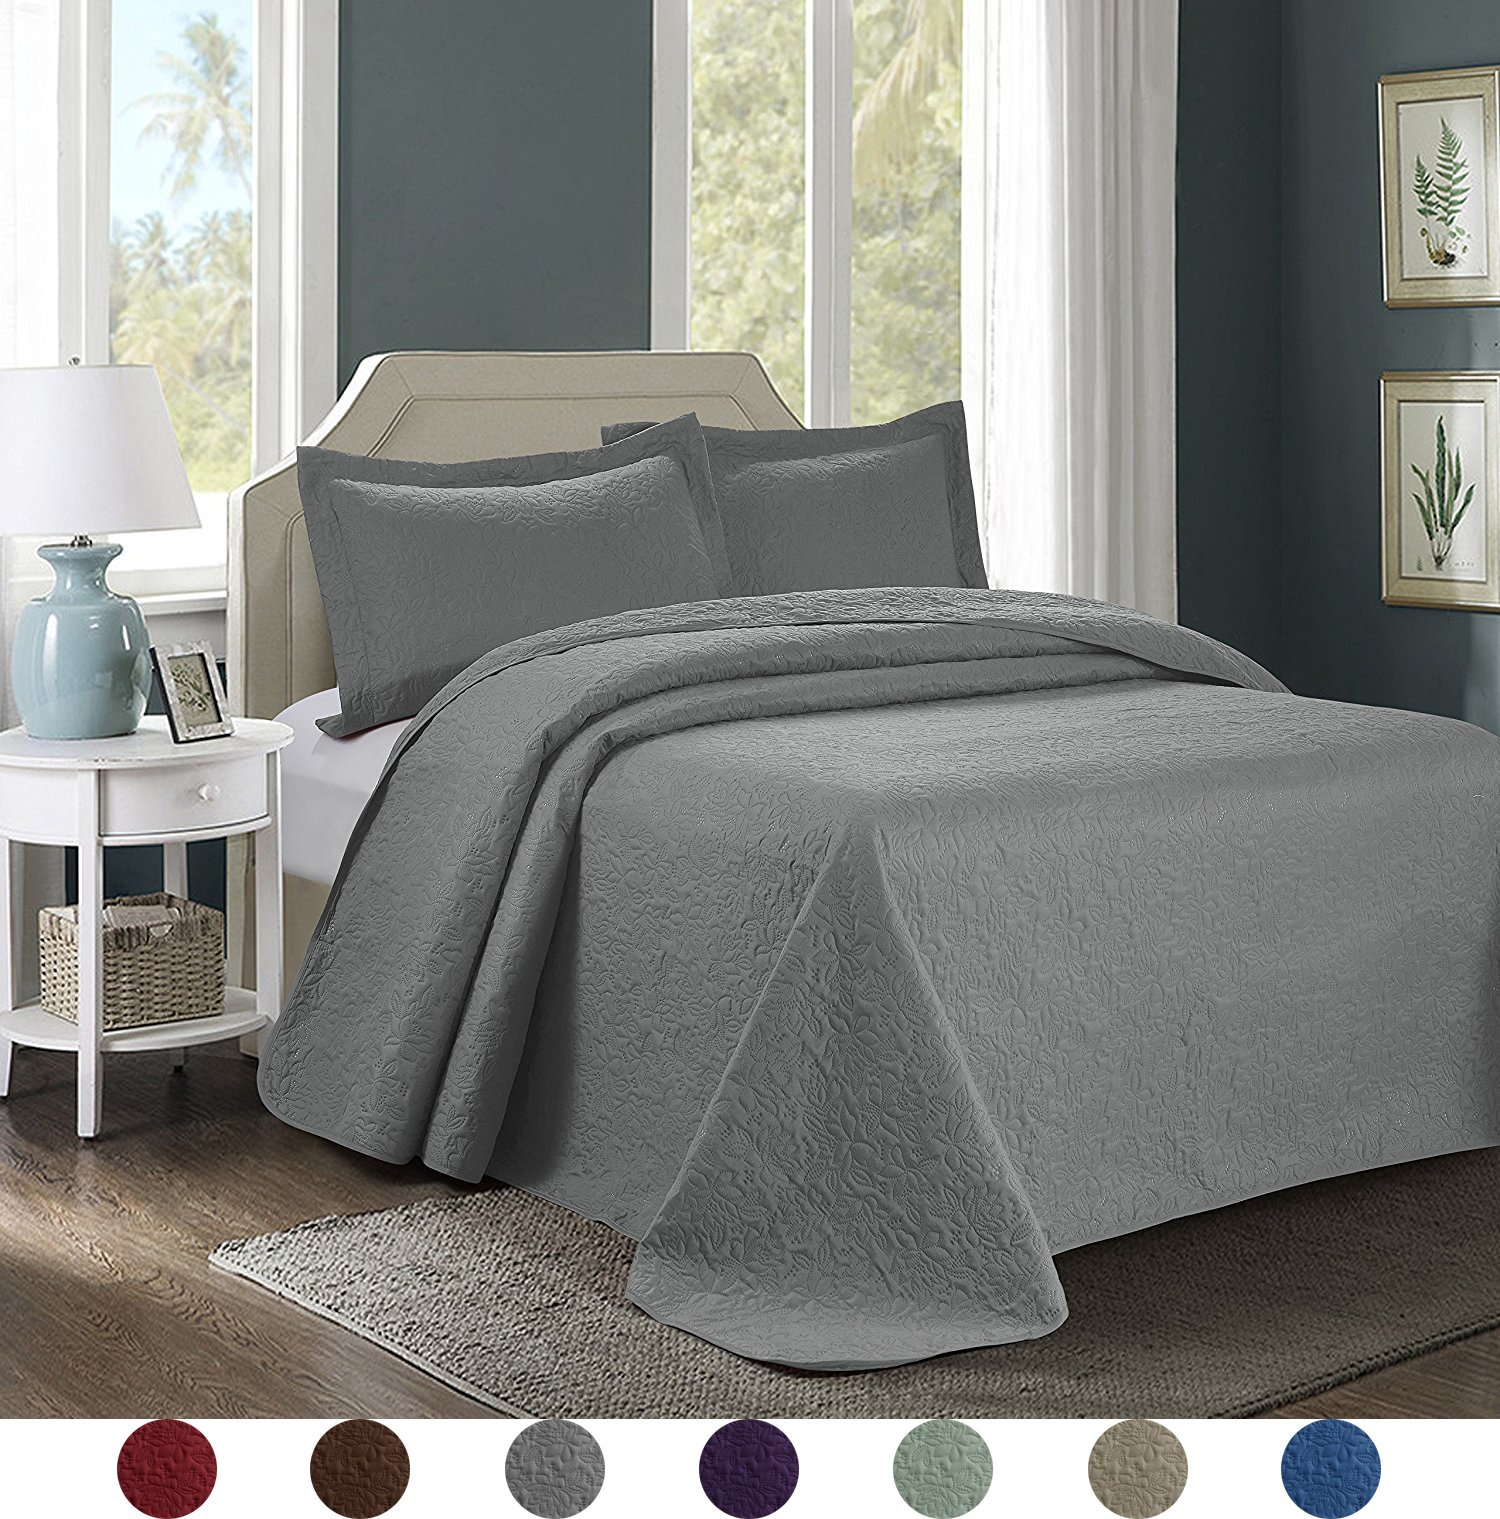 3 Piece Luxurious Comfy Embossed Bedspread Set,Oversized Ultrasonic Thermal Pressing Embossed Coverlet Set,Moderate Weight Bed Spread,JULES(Queen,Gray)